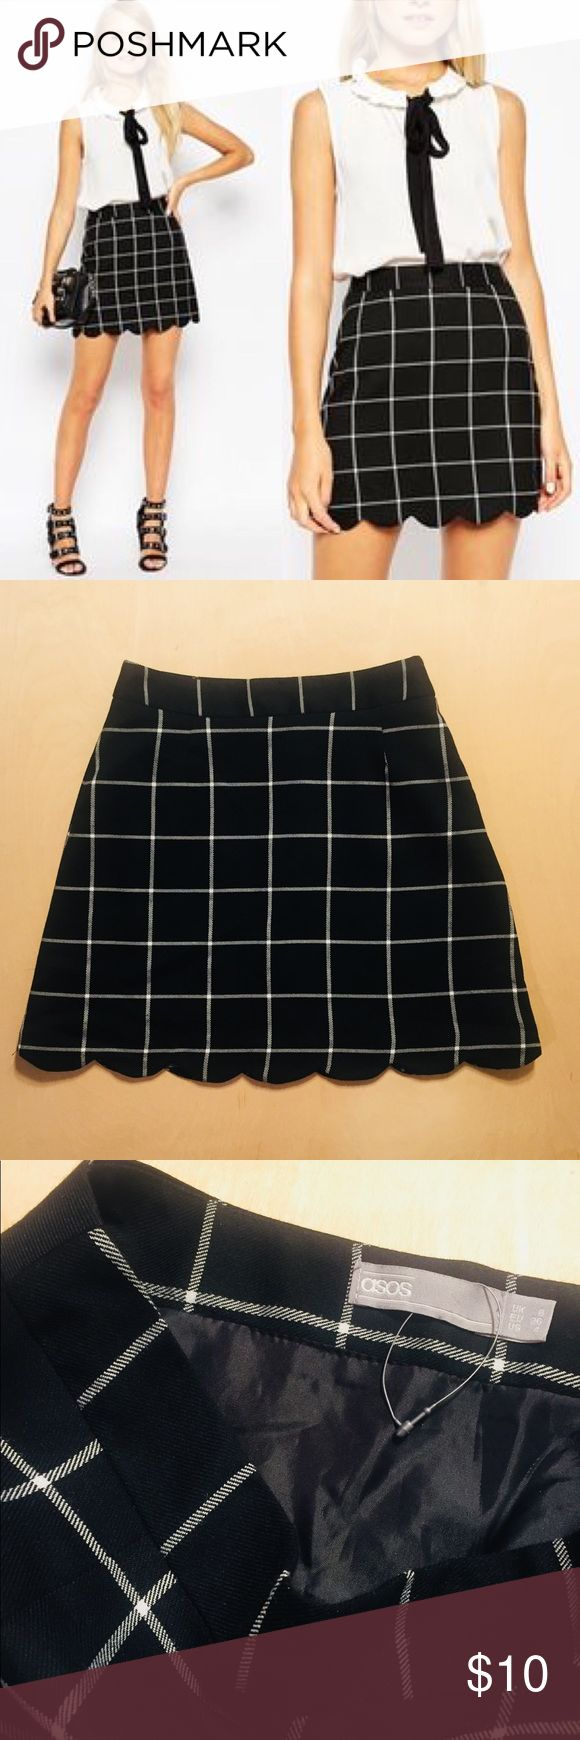 ASOS Plaid Check A-Line Schoolgirl Mini Skirt 4 S ASOS Mini skirt. Excellent condition - never worn. Size US 4. Zipper closure. ASOS Skirts Mini